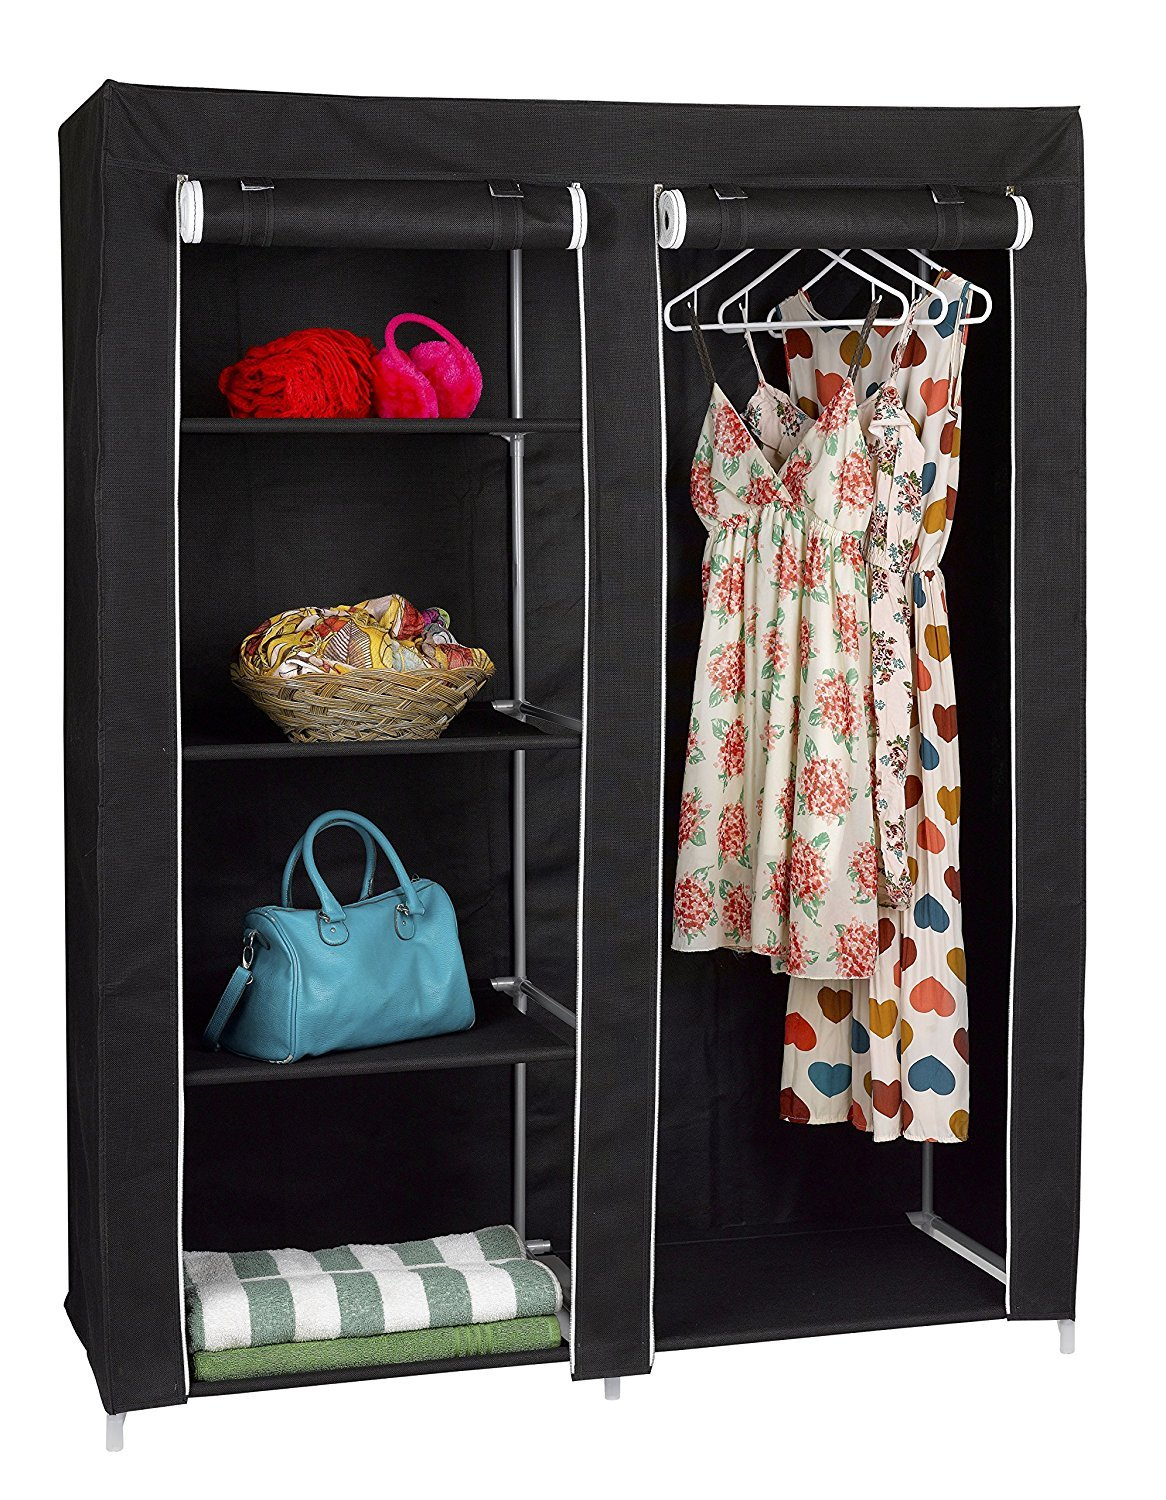 FloridaBrands Portable Closet Wardrobe - 62'' Clothes Closet Storage Organizer and Non-Woven Fabric Standing Wardrobe with Hanging Rack and 4 Shelves for Keeping Clothing Safe, Dust-Proof Cover by by FloridaBrands (Image #1)